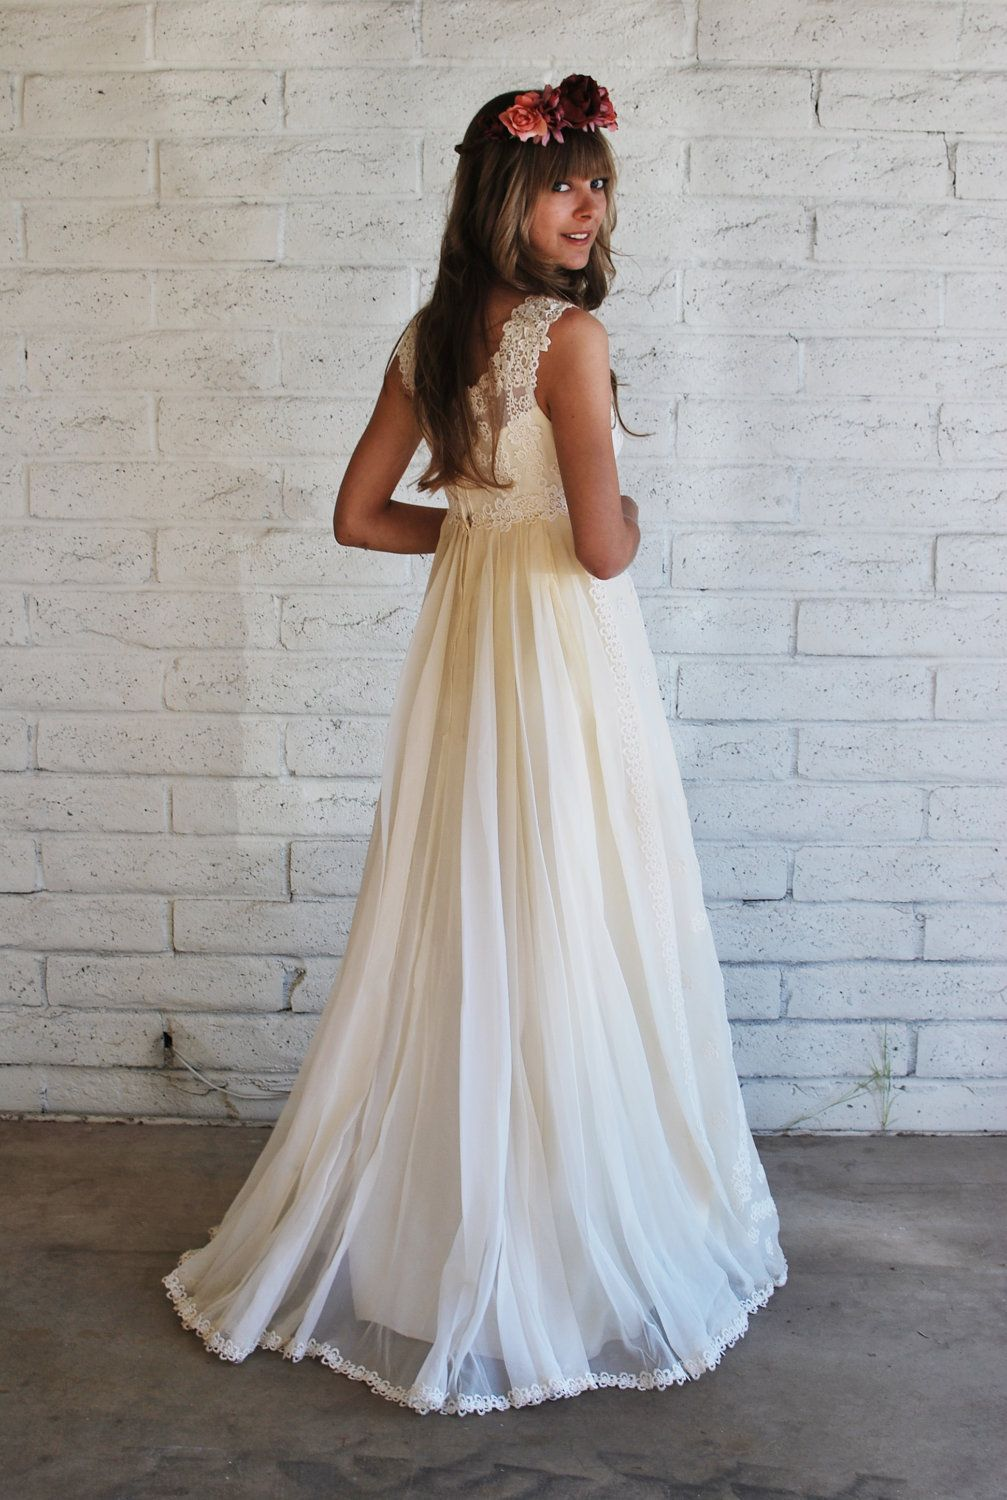 S boho wedding gown weddingdress pinterest s style